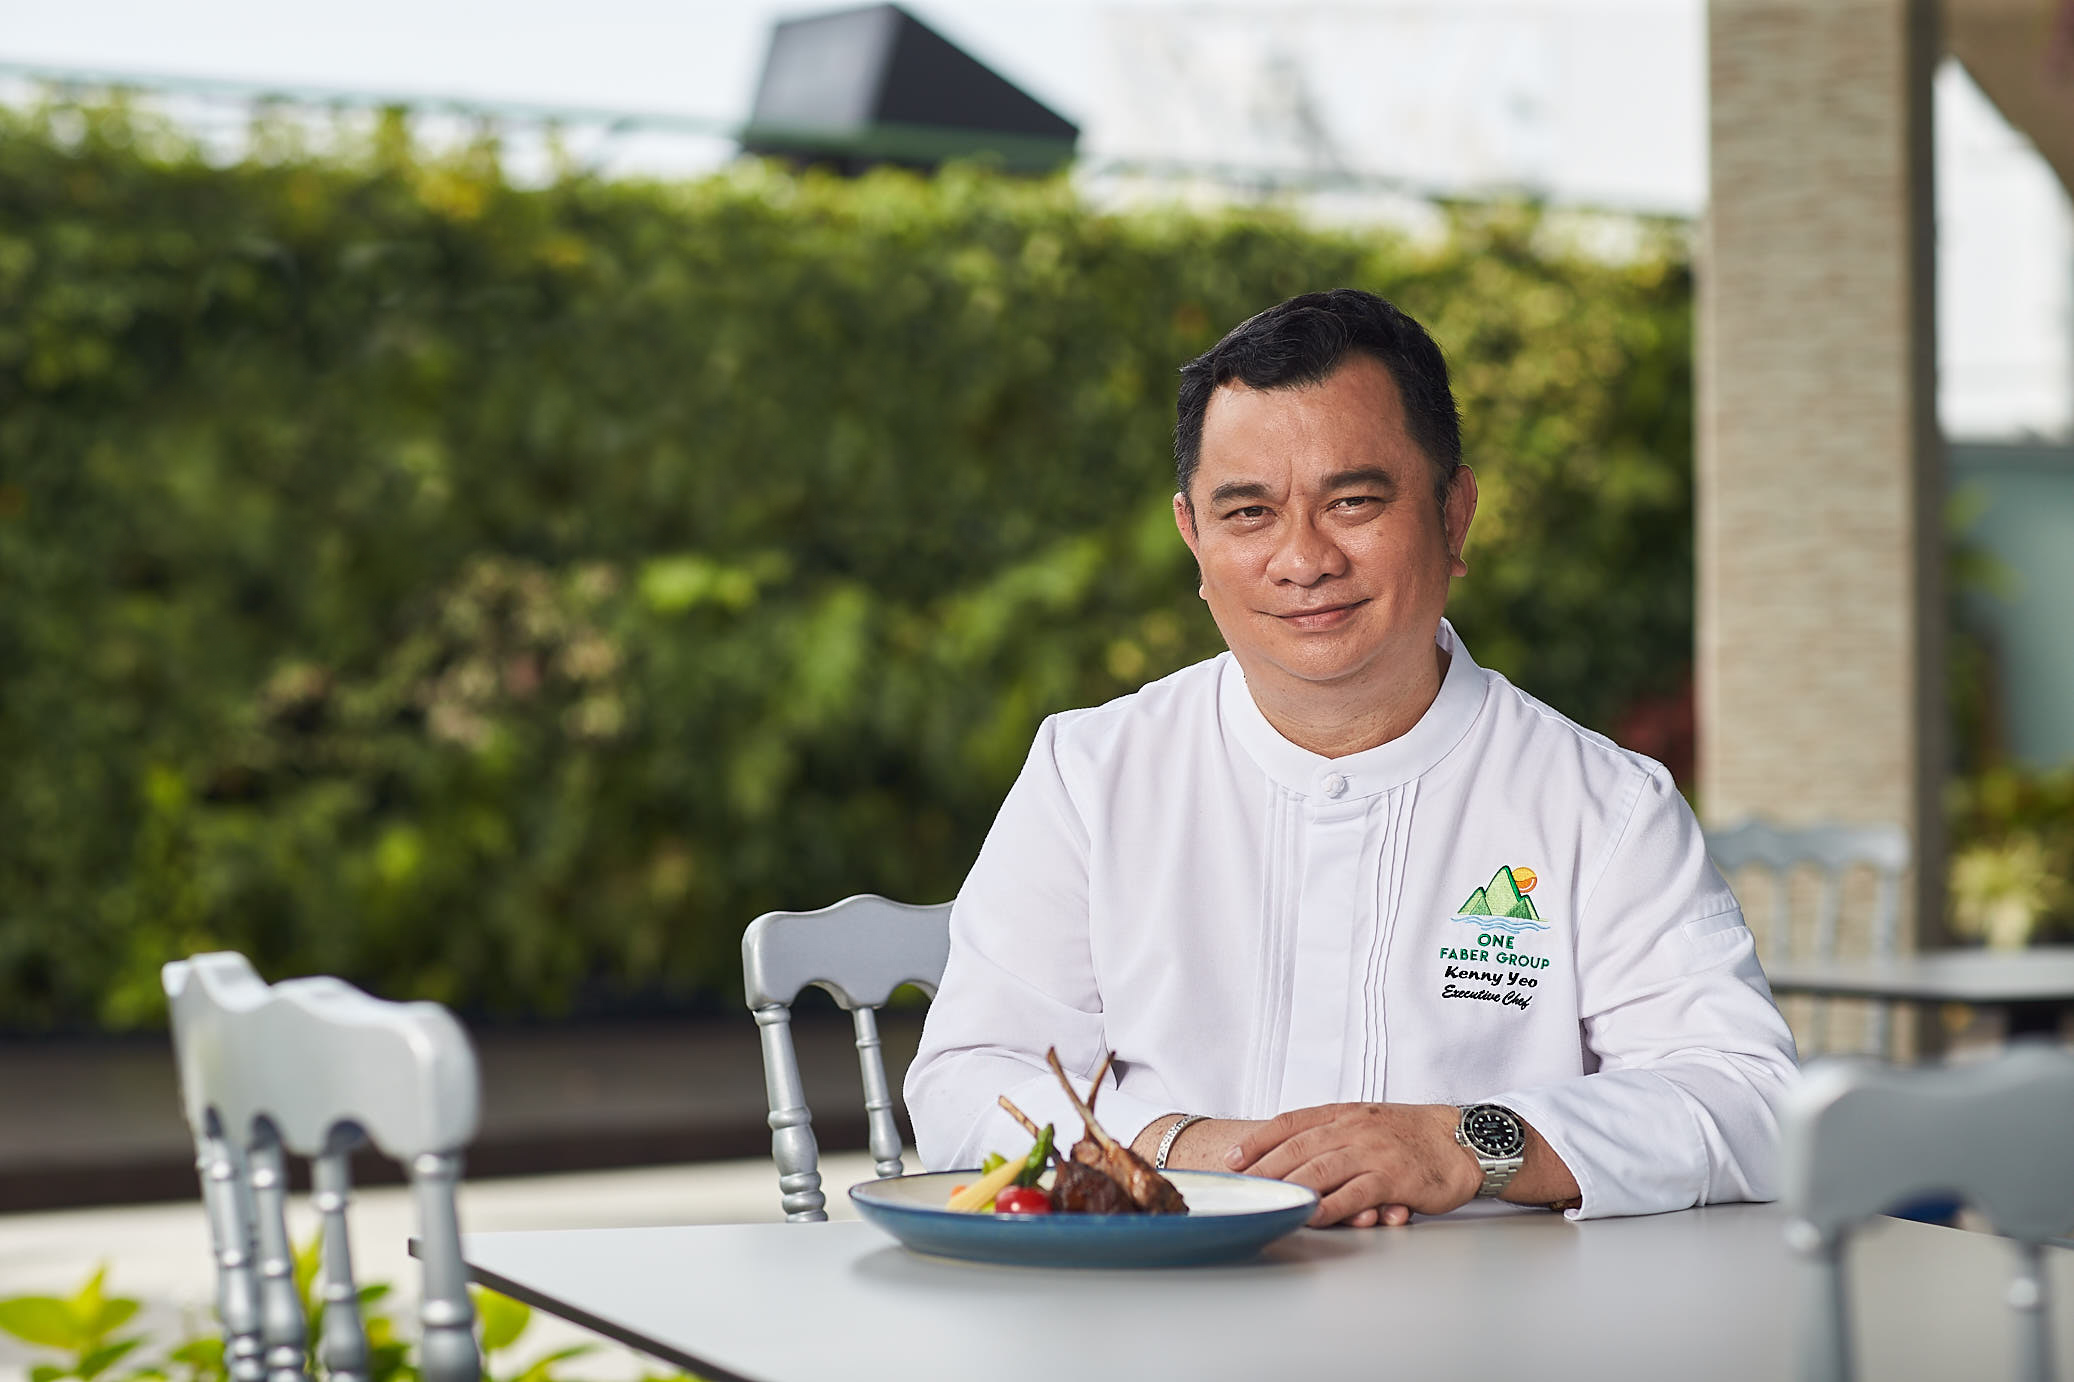 Chef Kenny Yeo - A culinary veteran with over 30 years of experience in French cuisine, Executive Chef Kenny Yeo puts a different spin on the menu for Arbora, featuring a selection of Western classics and local delights.